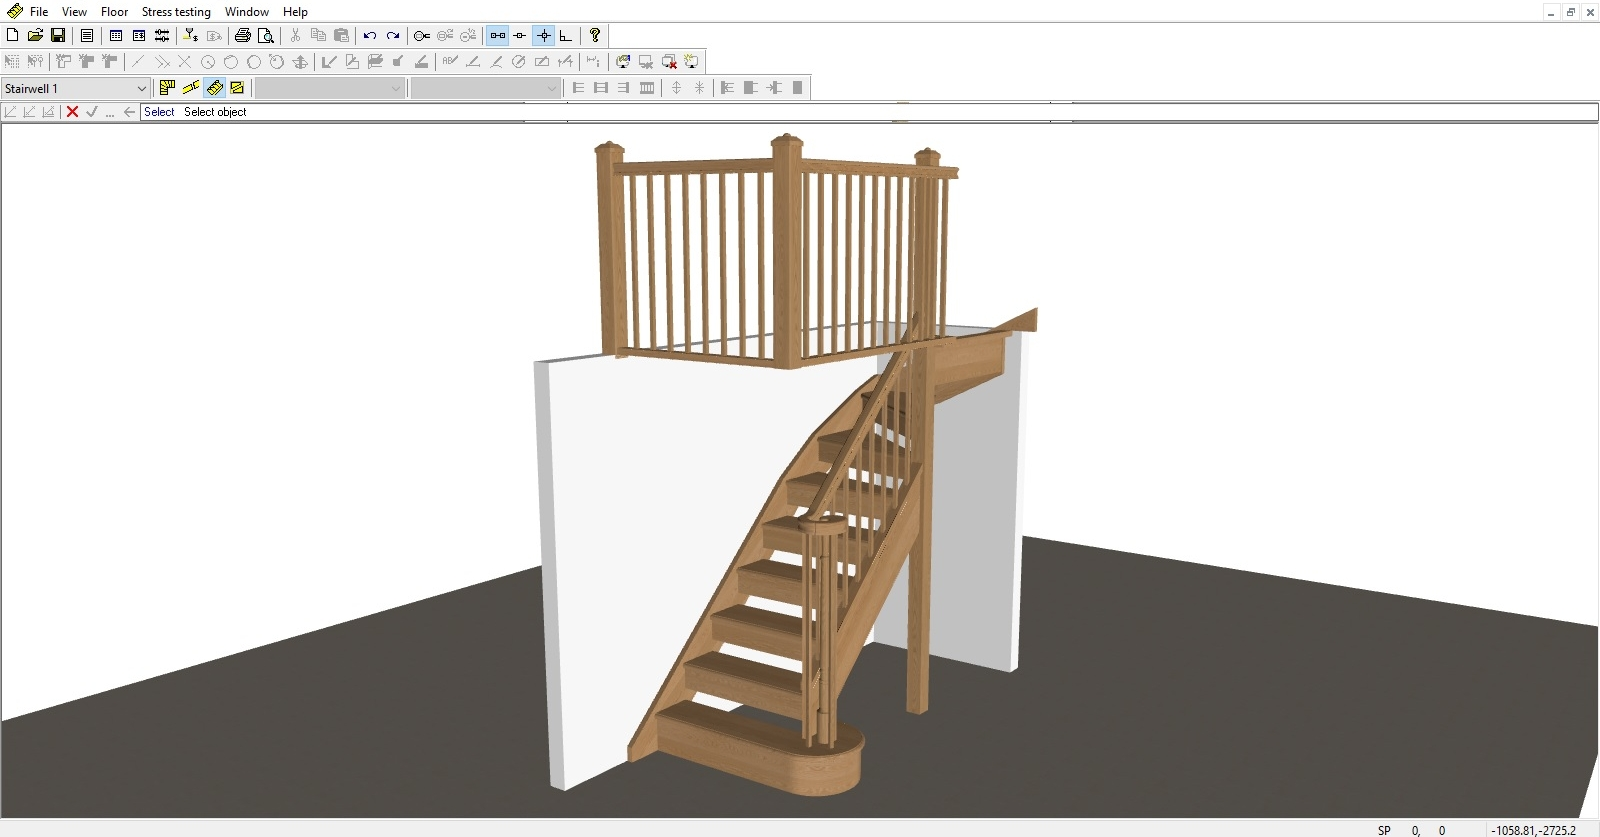 3D Elevation Drawings - Using Staircon we can provide you with 3D images of the staircase we have designed so you can see it before it's been made.